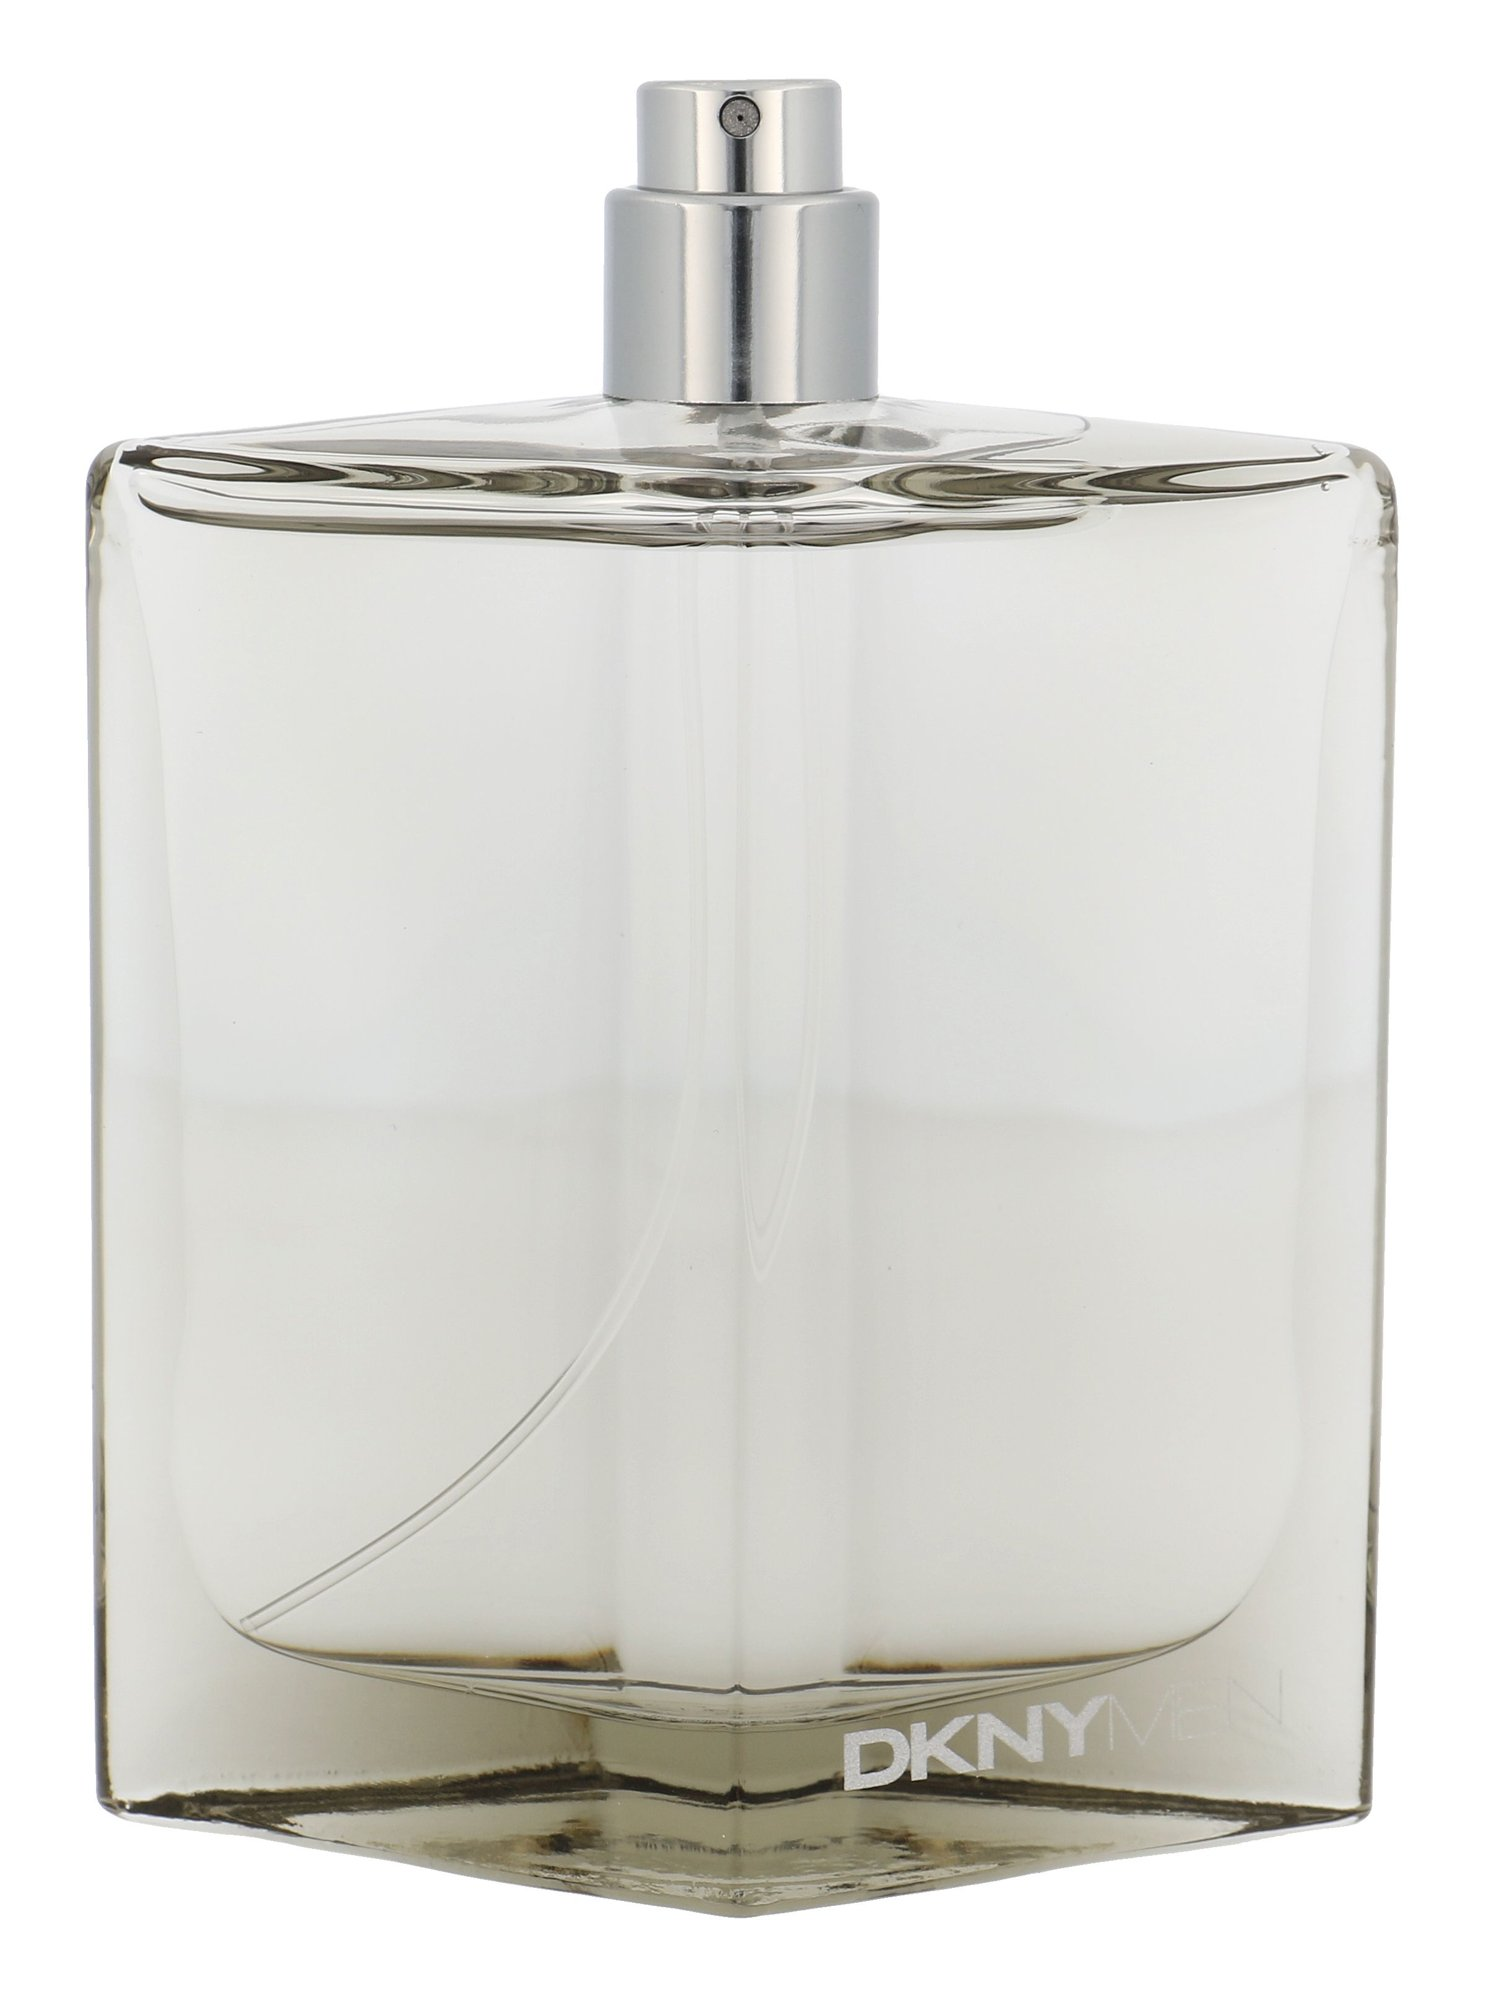 DKNY Men 2009 EDT 100ml